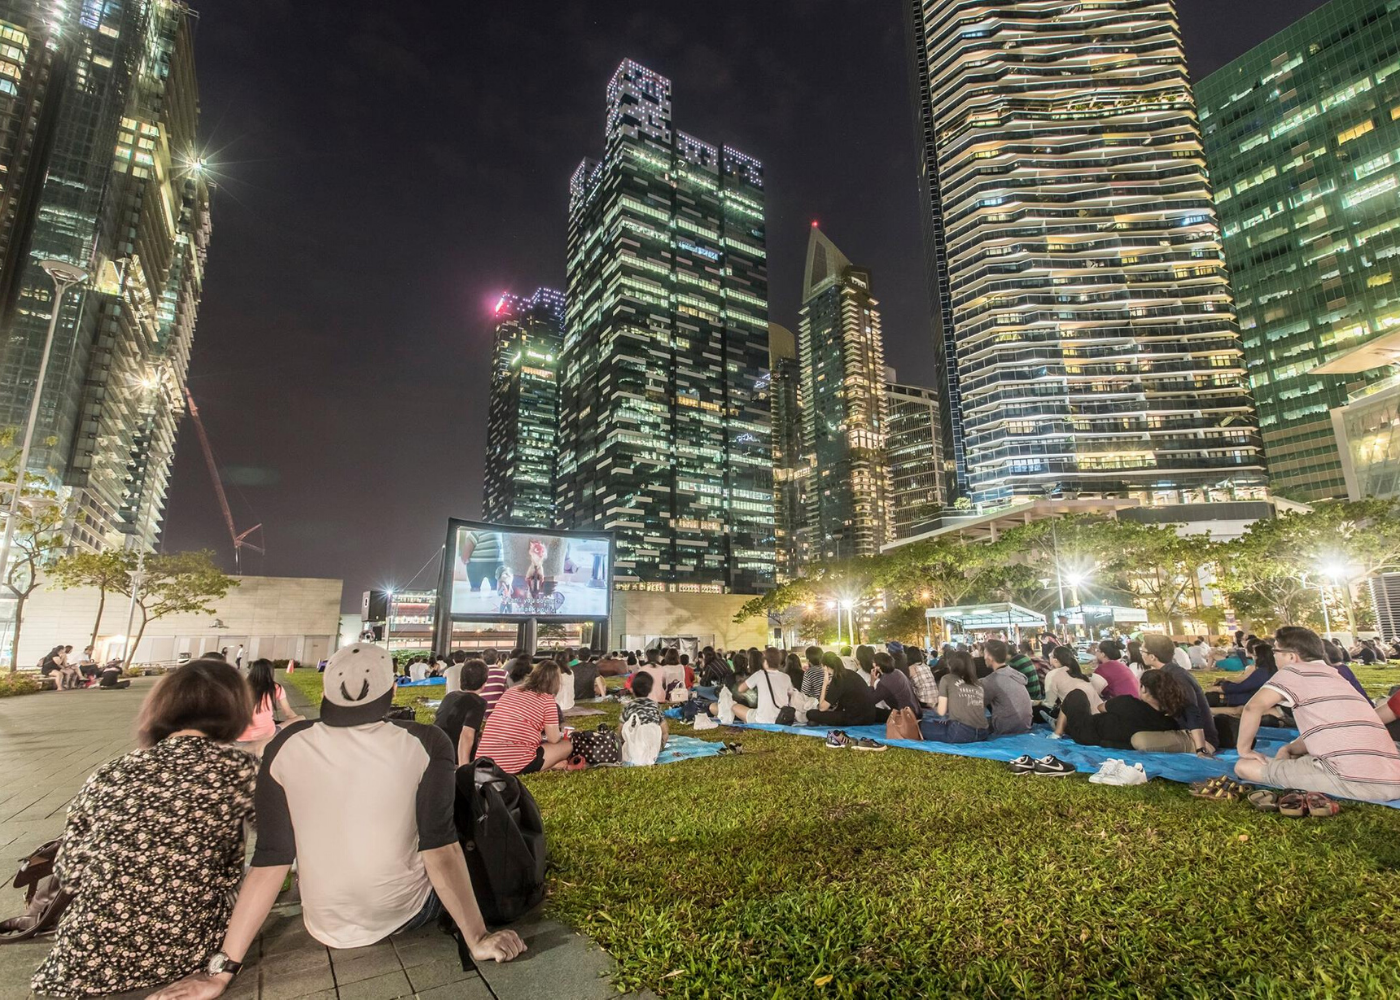 outdoor cinema on the grass